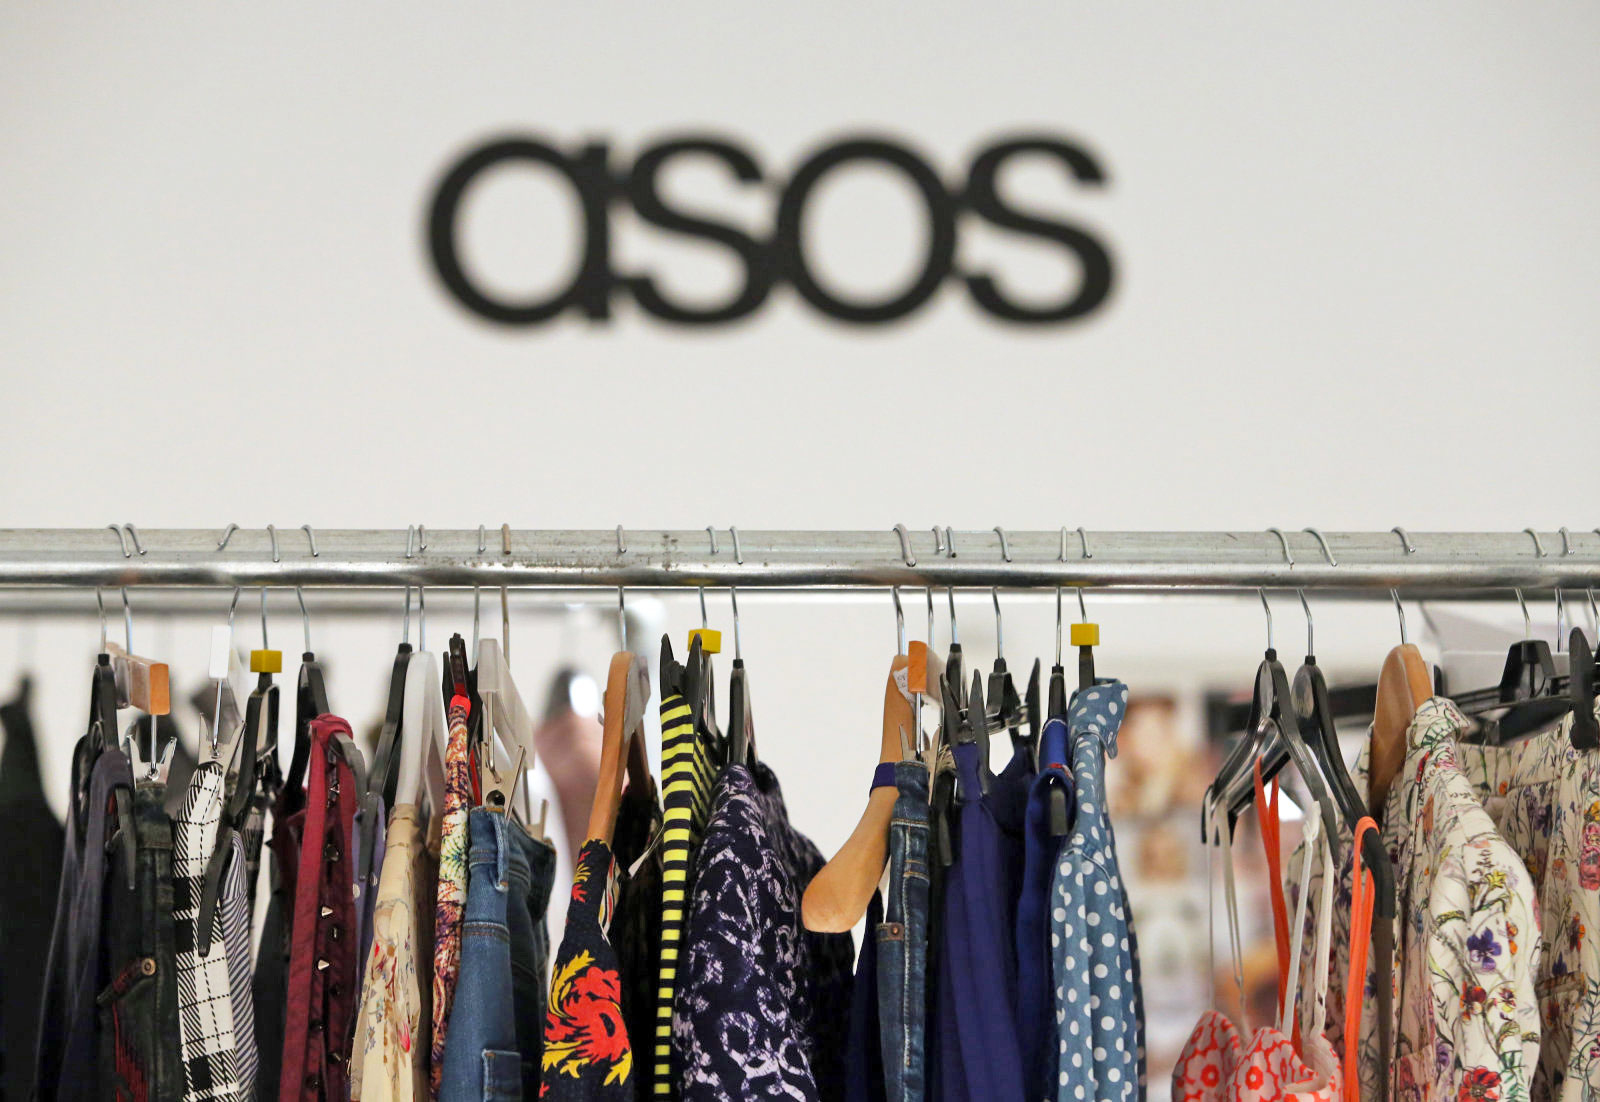 Asos have implemented a visual search feature into their app which allows users to search similar items using photos or screenshots.